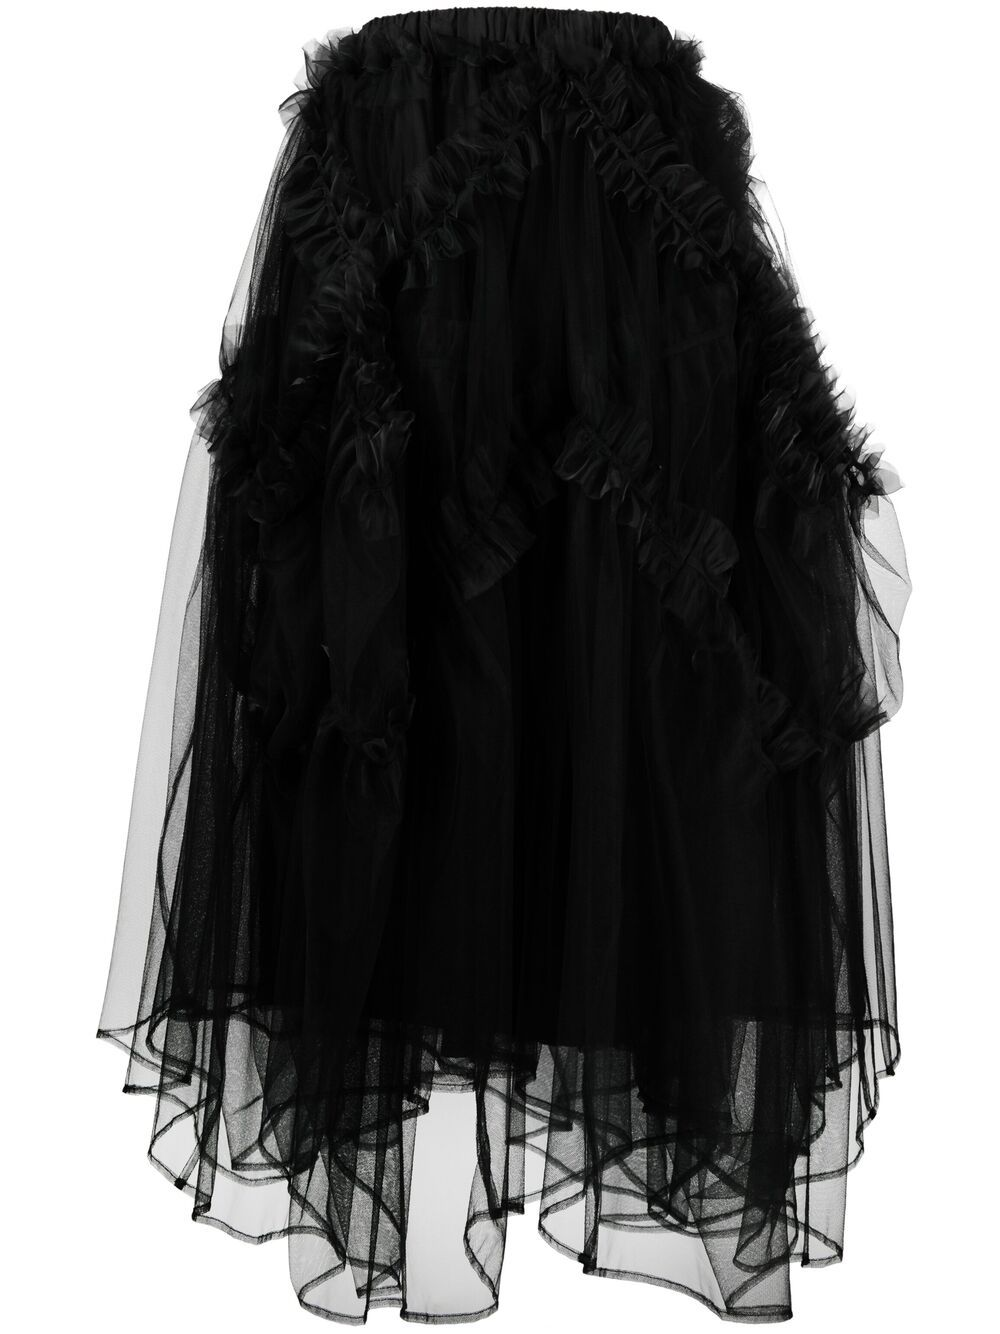 Gonna in tulle con ruches NOIR KEI NINOMIYA | Gonna | 3G-S002-0511